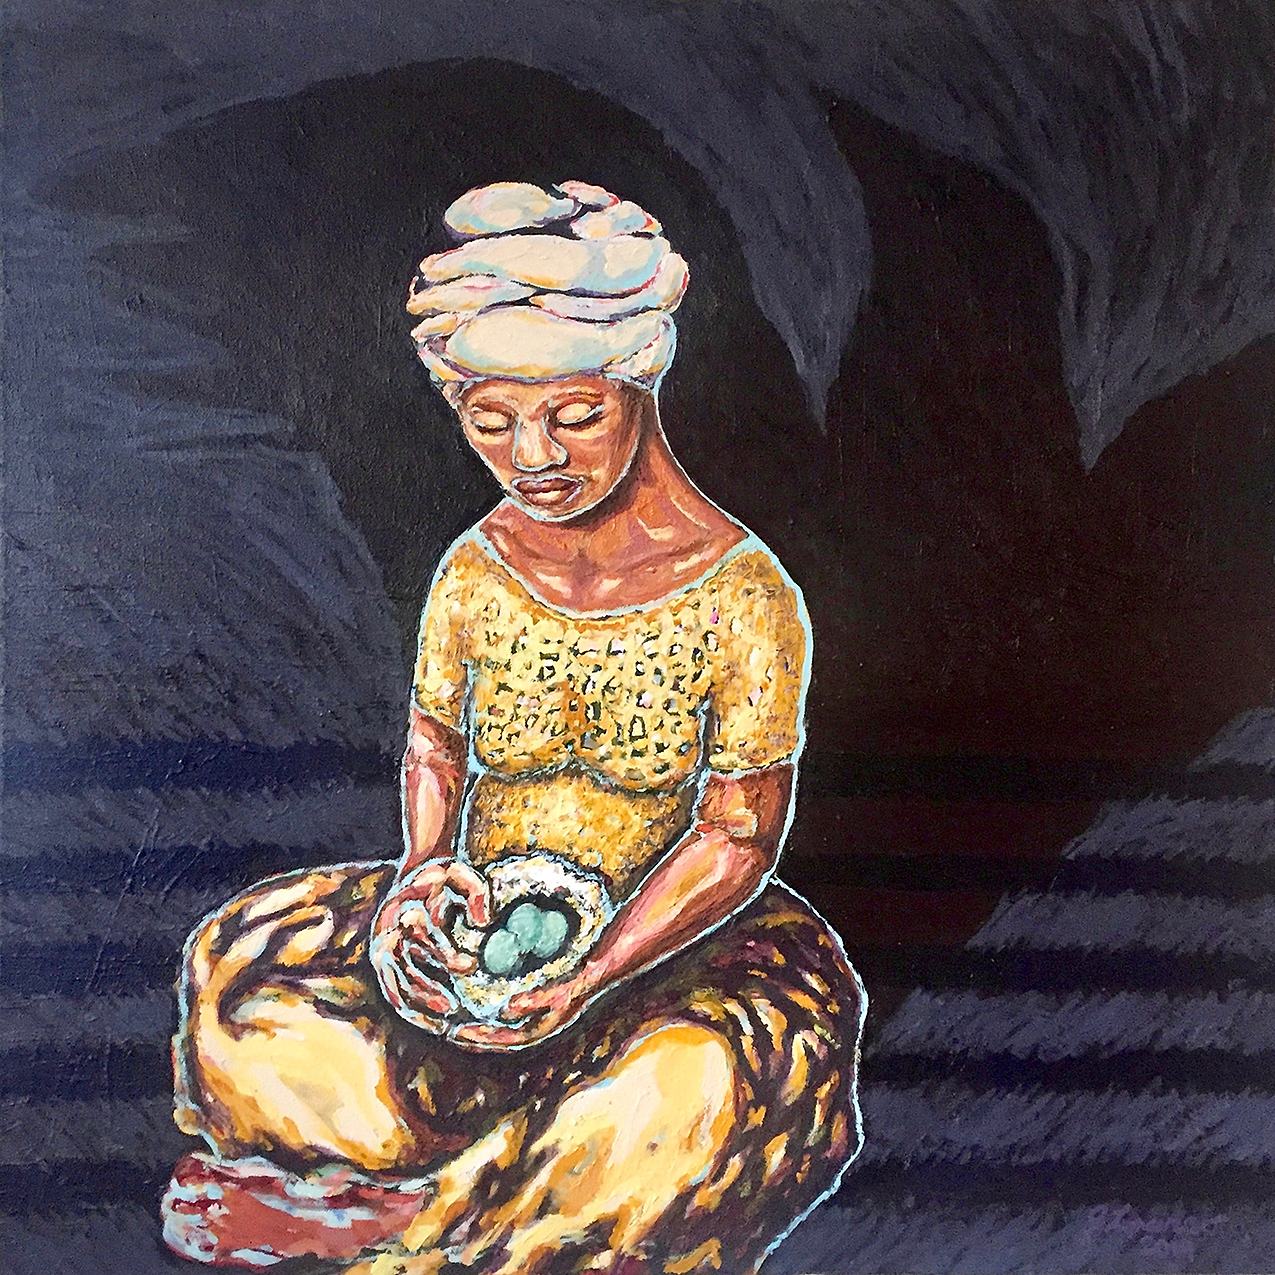 Black woman cradling a nest of eggs, casting a shadow of a bird